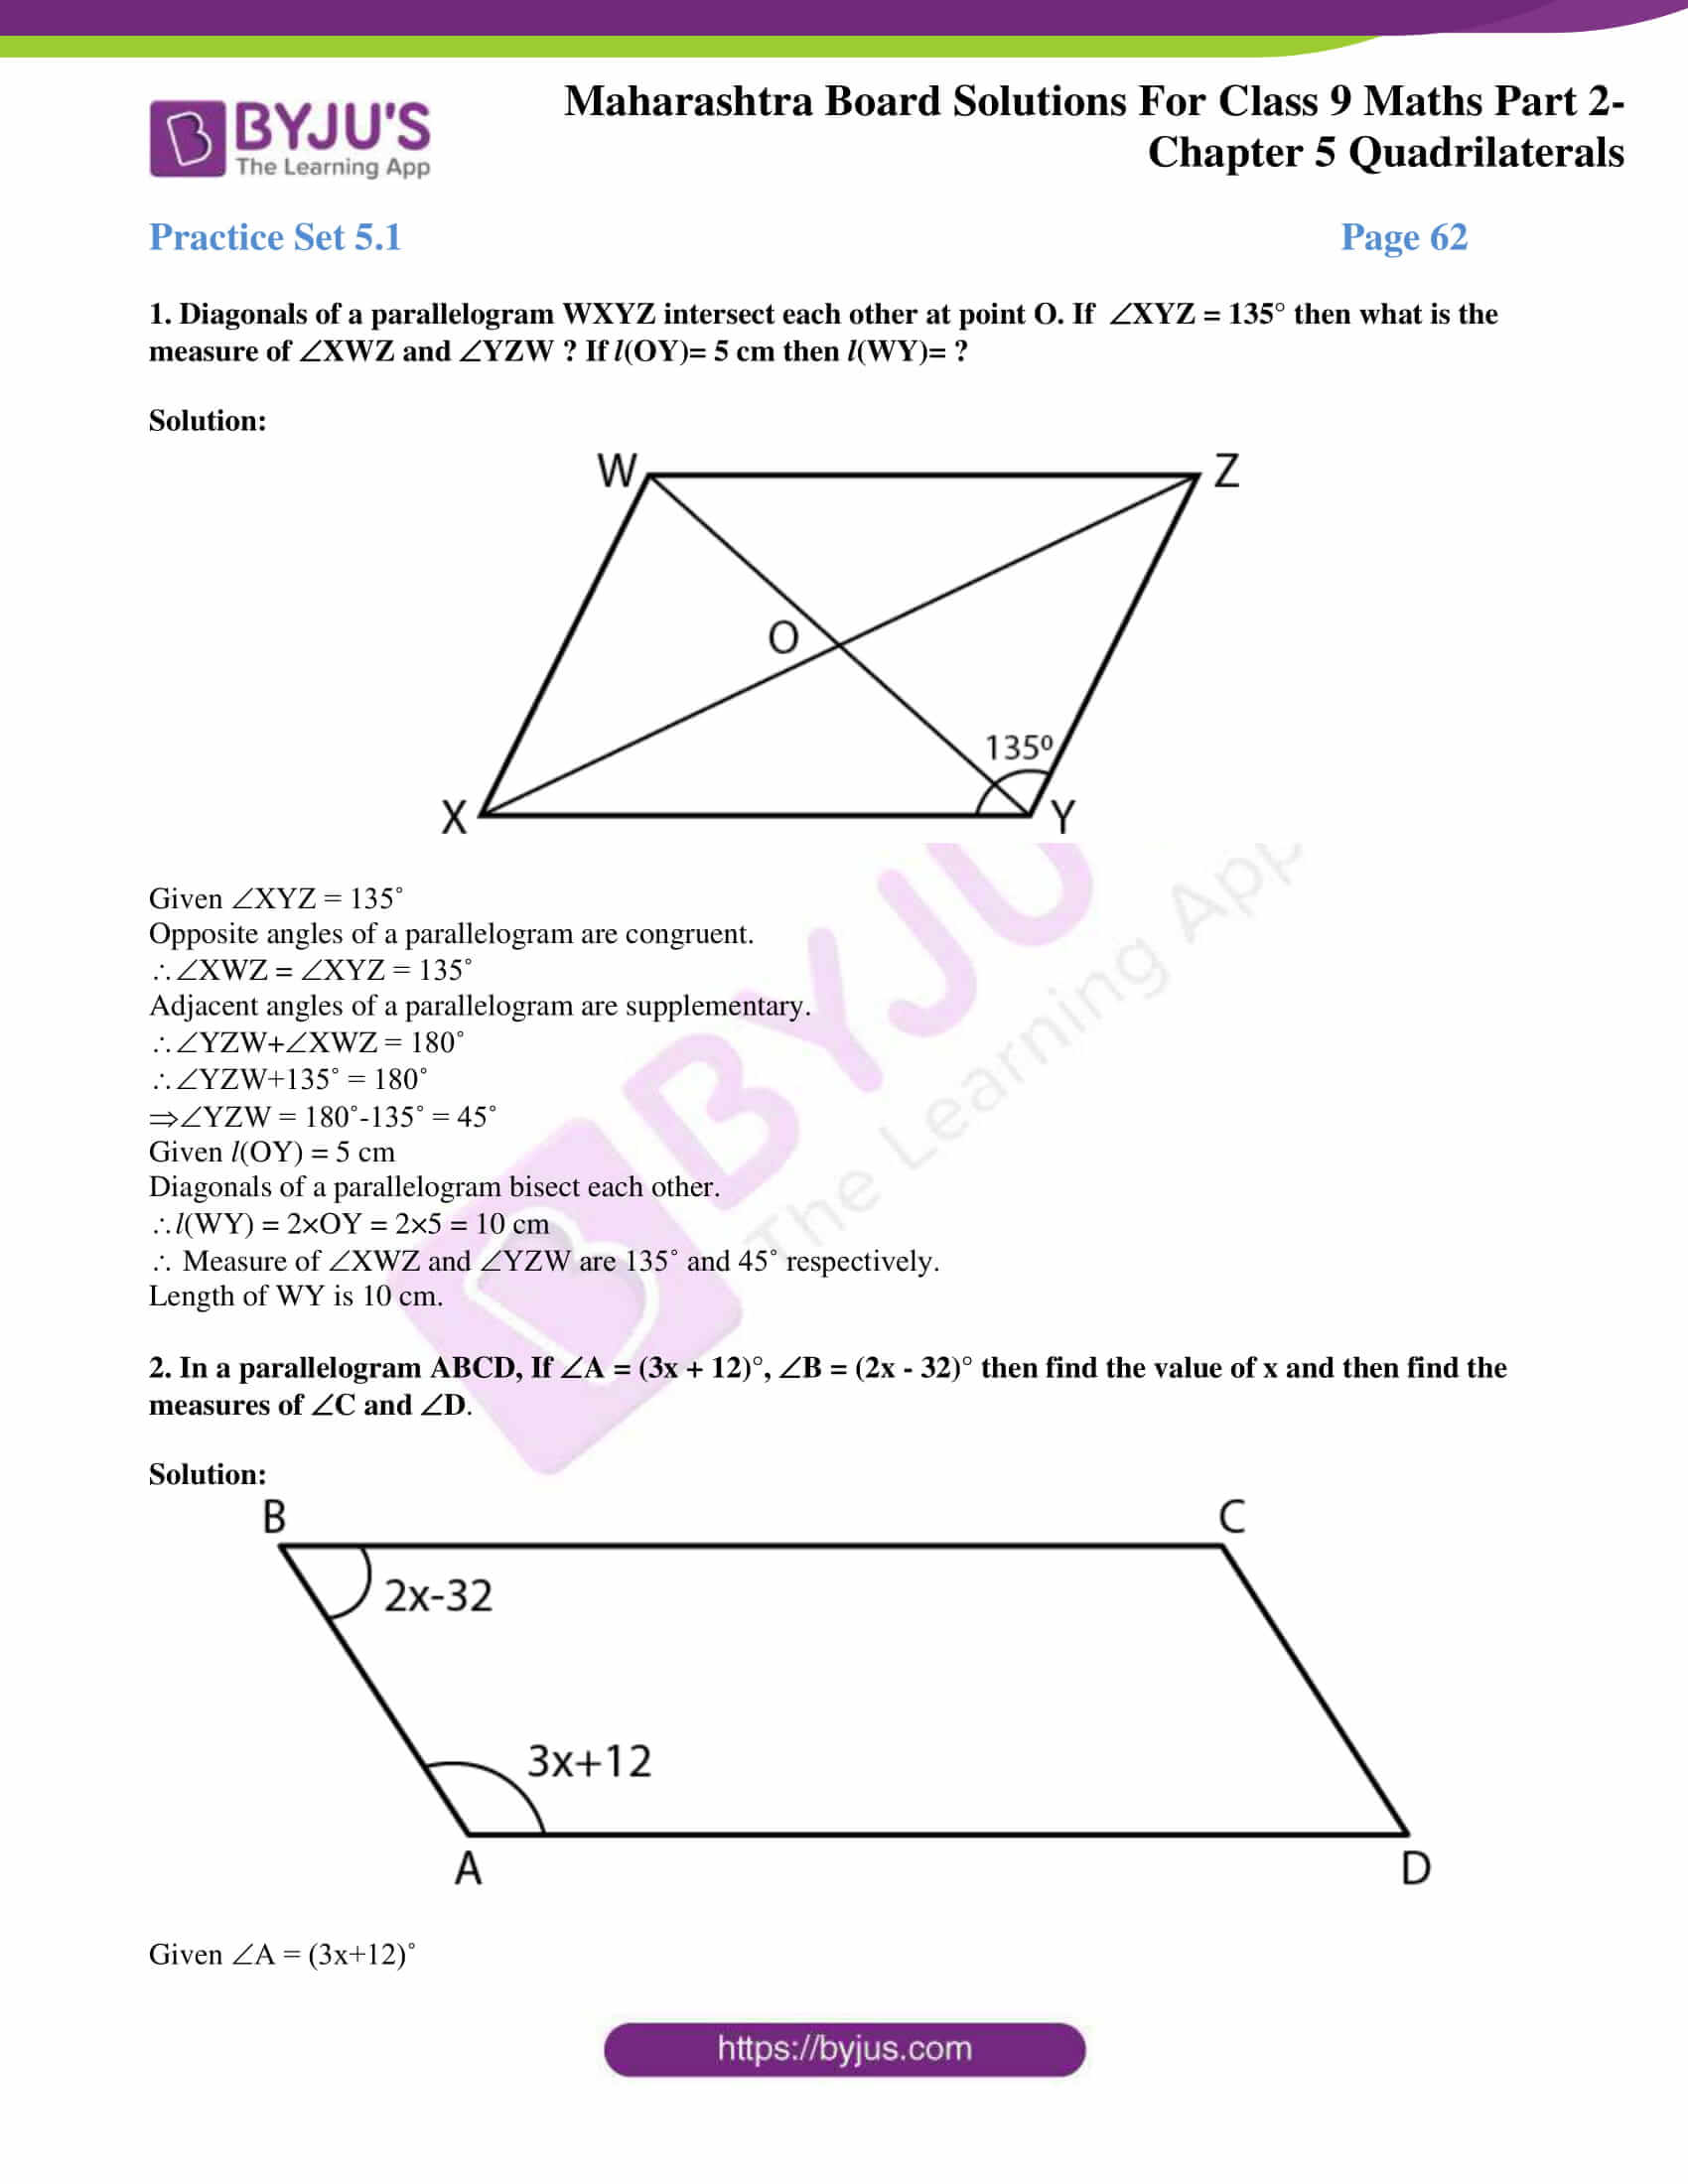 msbshse solutions for class 9 maths part 2 chapter 5 01